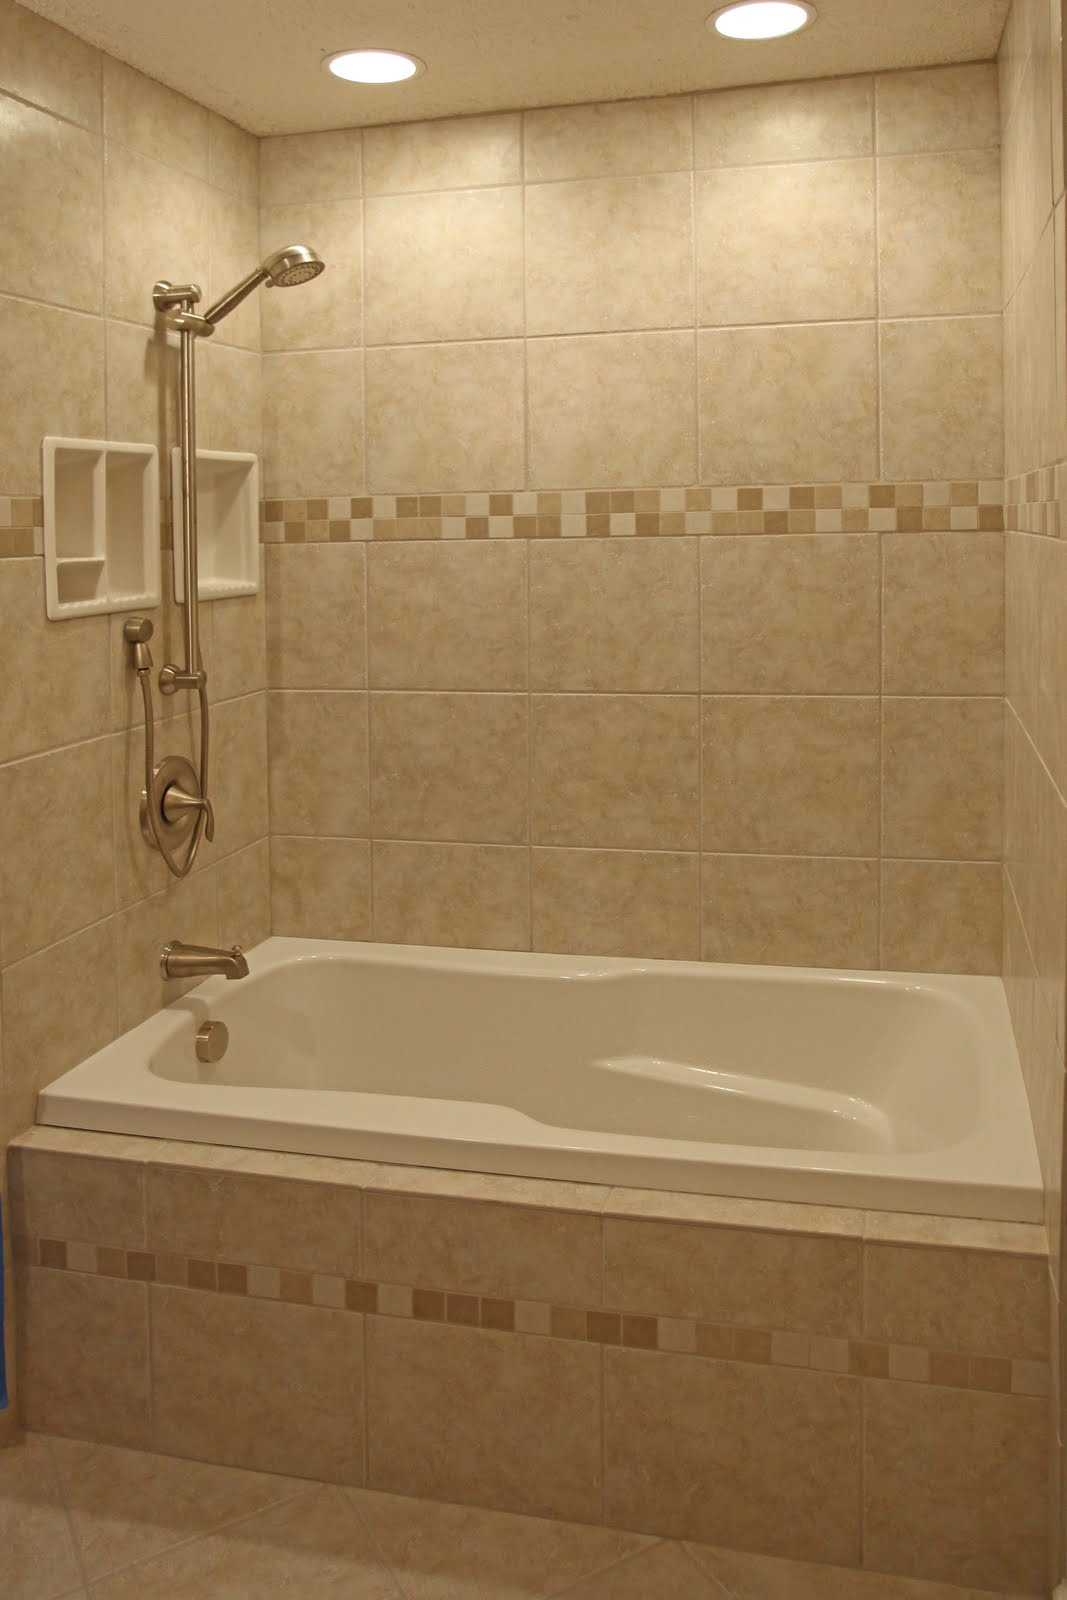 Bathroom remodeling design ideas tile shower niches for Small bathroom remodel designs